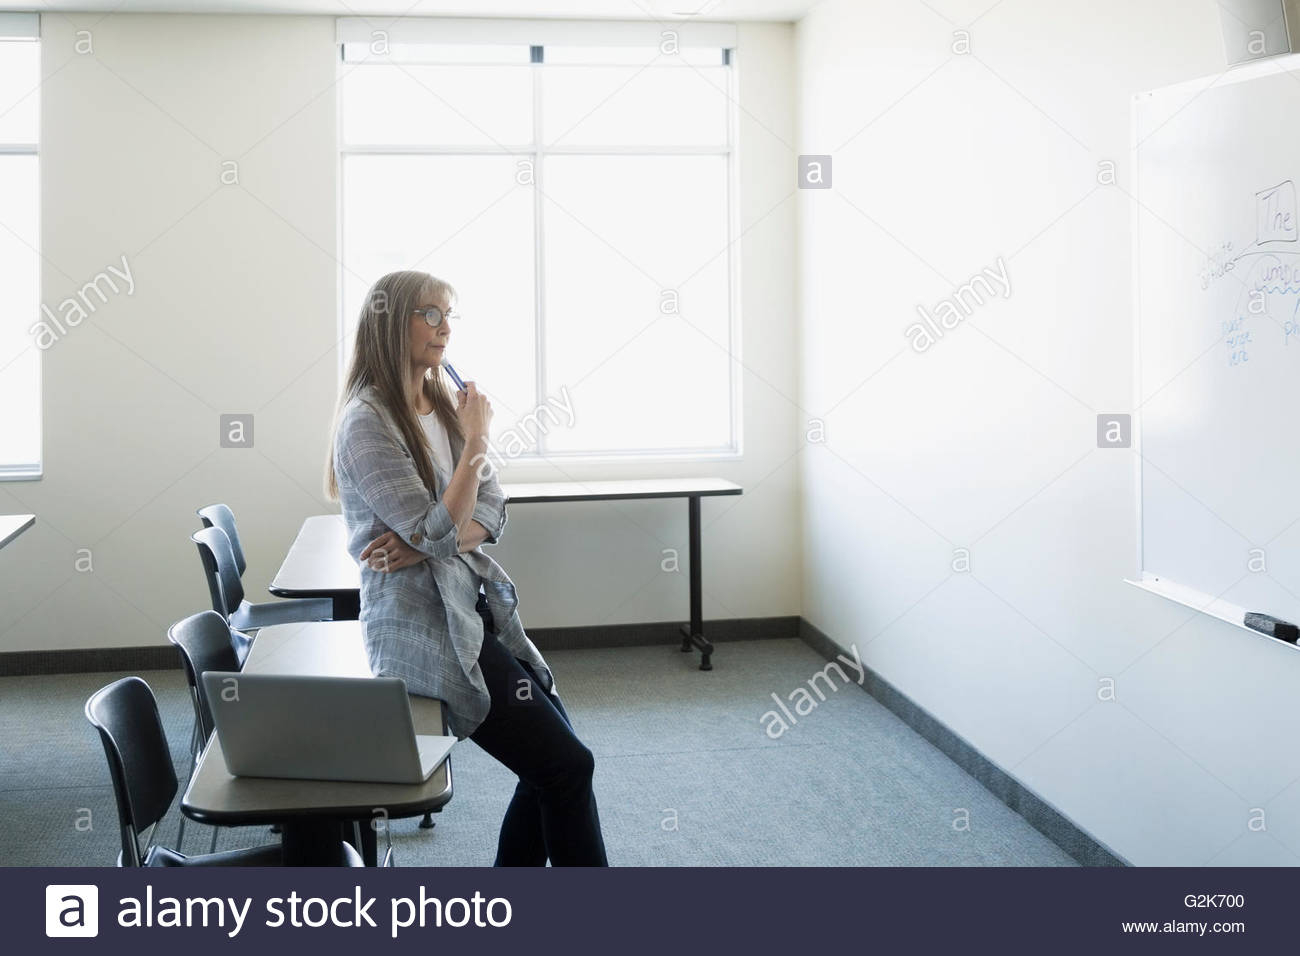 Pensive professor with laptop looking at whiteboard in classroom - Stock Image